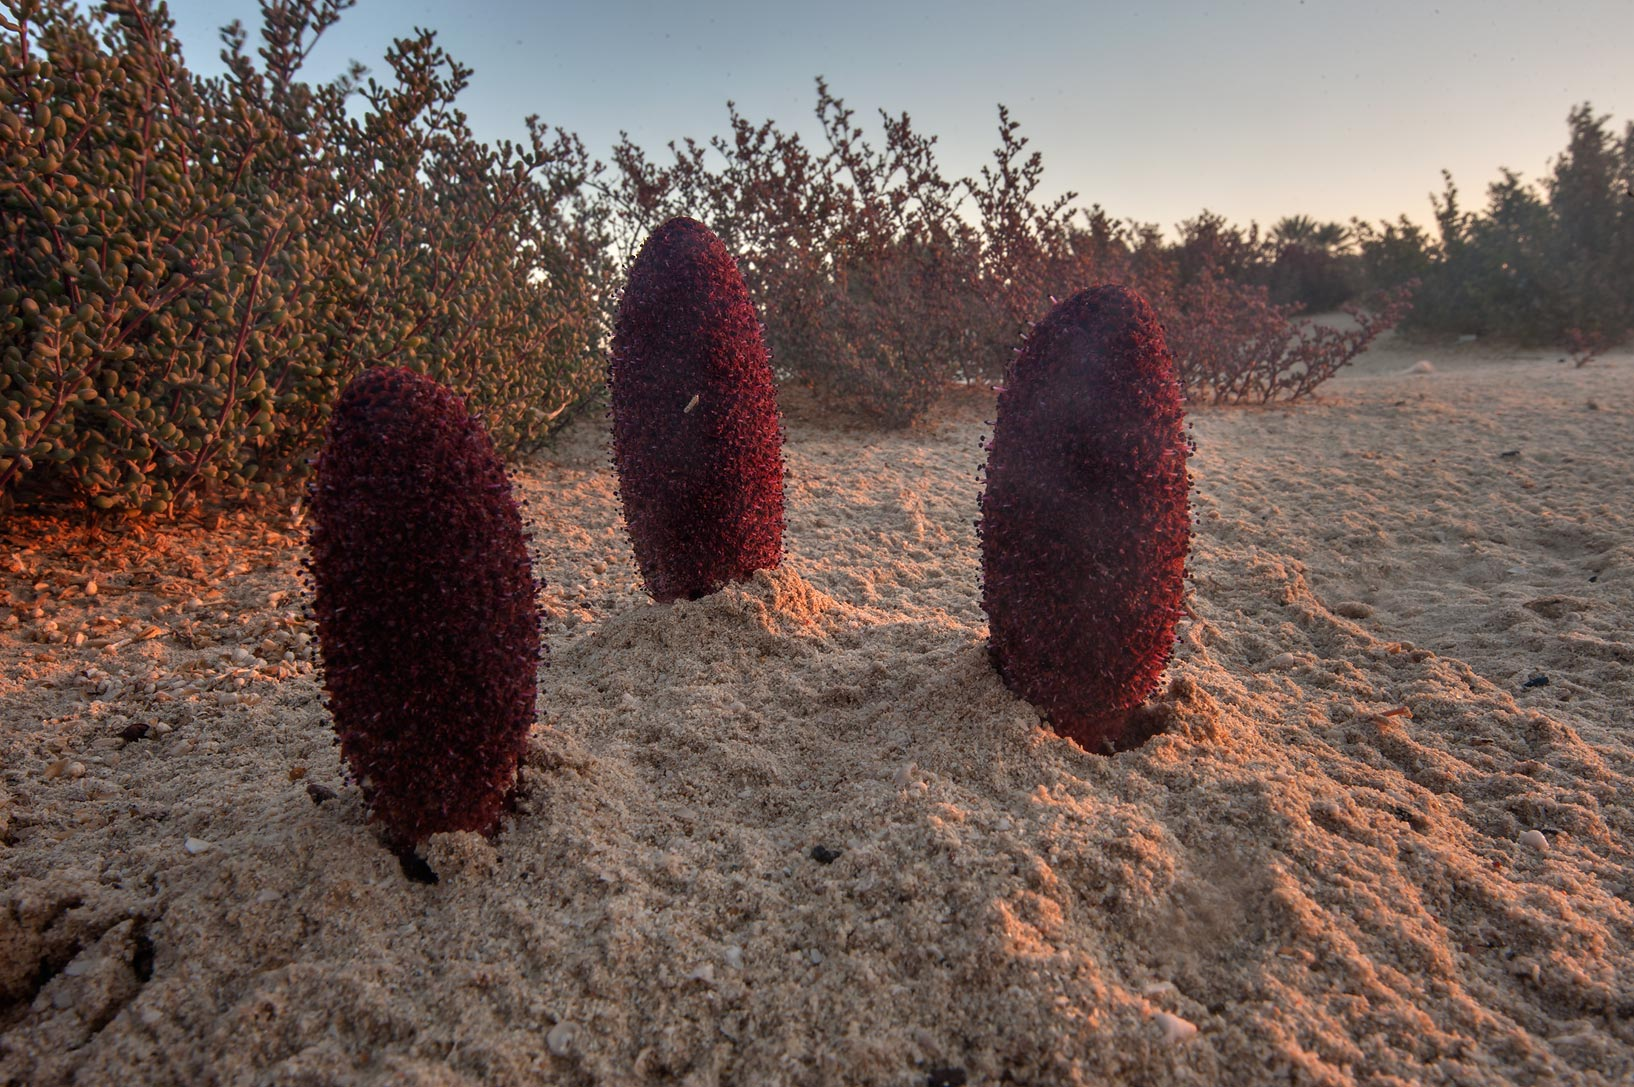 Club-shaped flowers of Desert Thumb (Cynomorium...well near Umm Bab. South-western Qatar